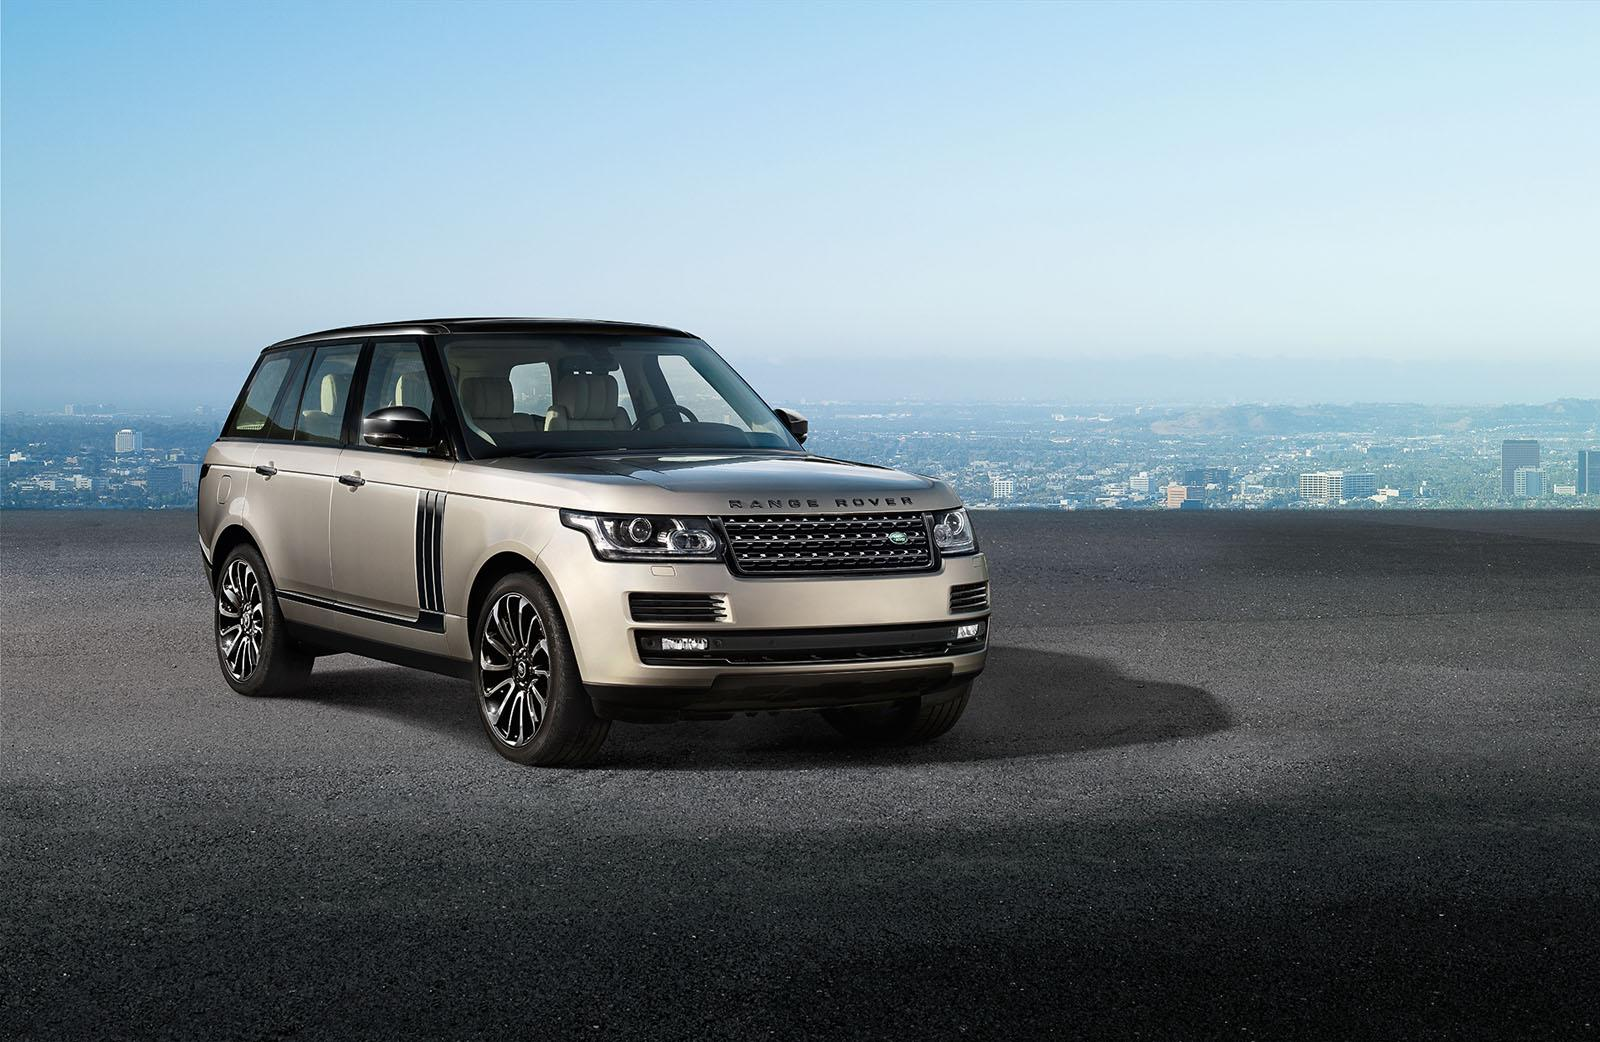 land rover Thinking about land rover cars in india get a complete price list of land rover new cars including latest and 2018 upcoming models get on-road price, read expert reviews, specifications, see pictures, dealers and set an alert for upcoming land rover car launches.